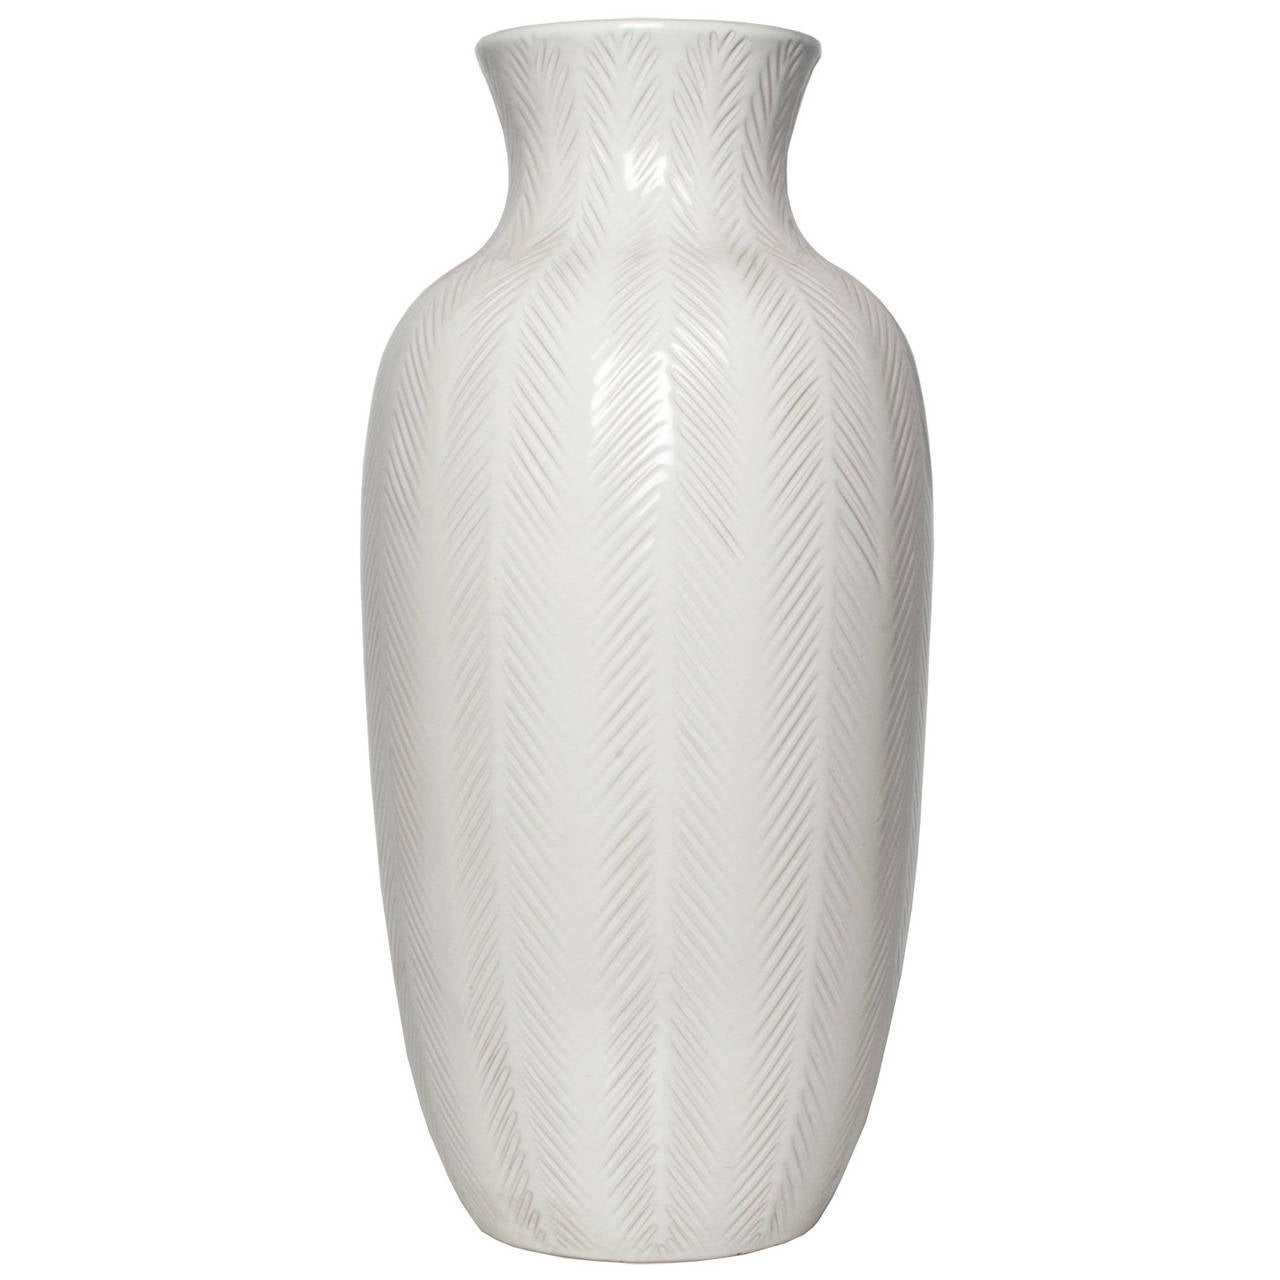 Large Swedish Art Deco White Ceramic Vase By Anna Lisa